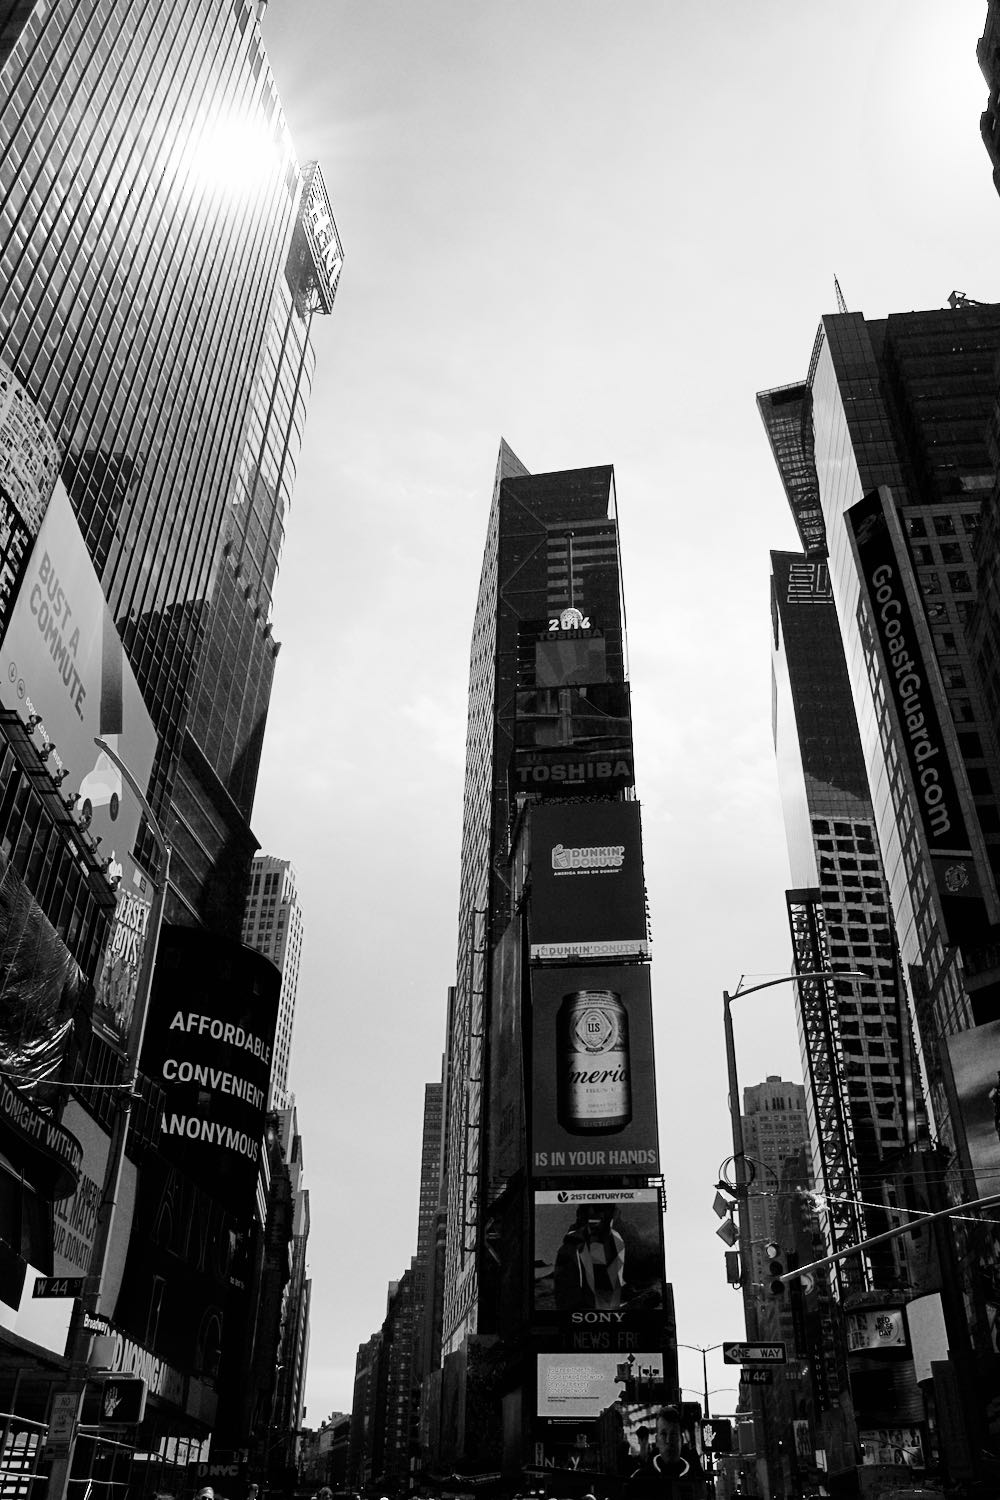 Times square 2016 in black and white